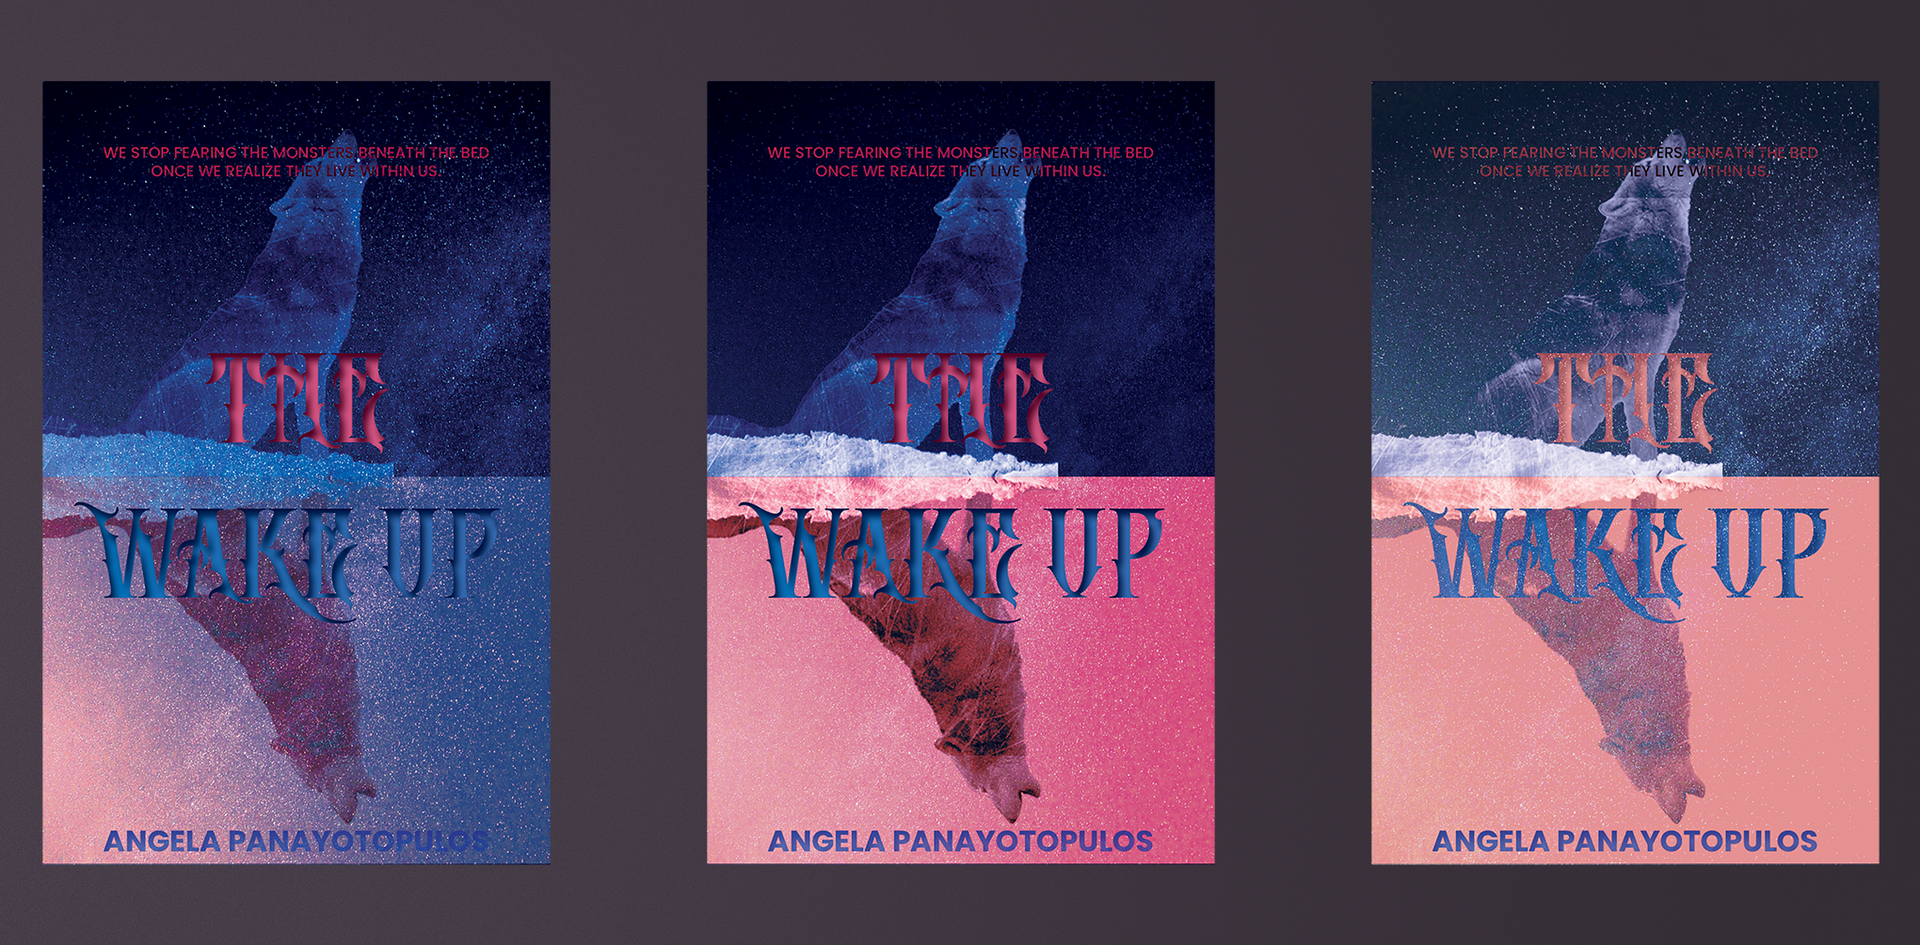 The Wake Up Mockup 1.0.png